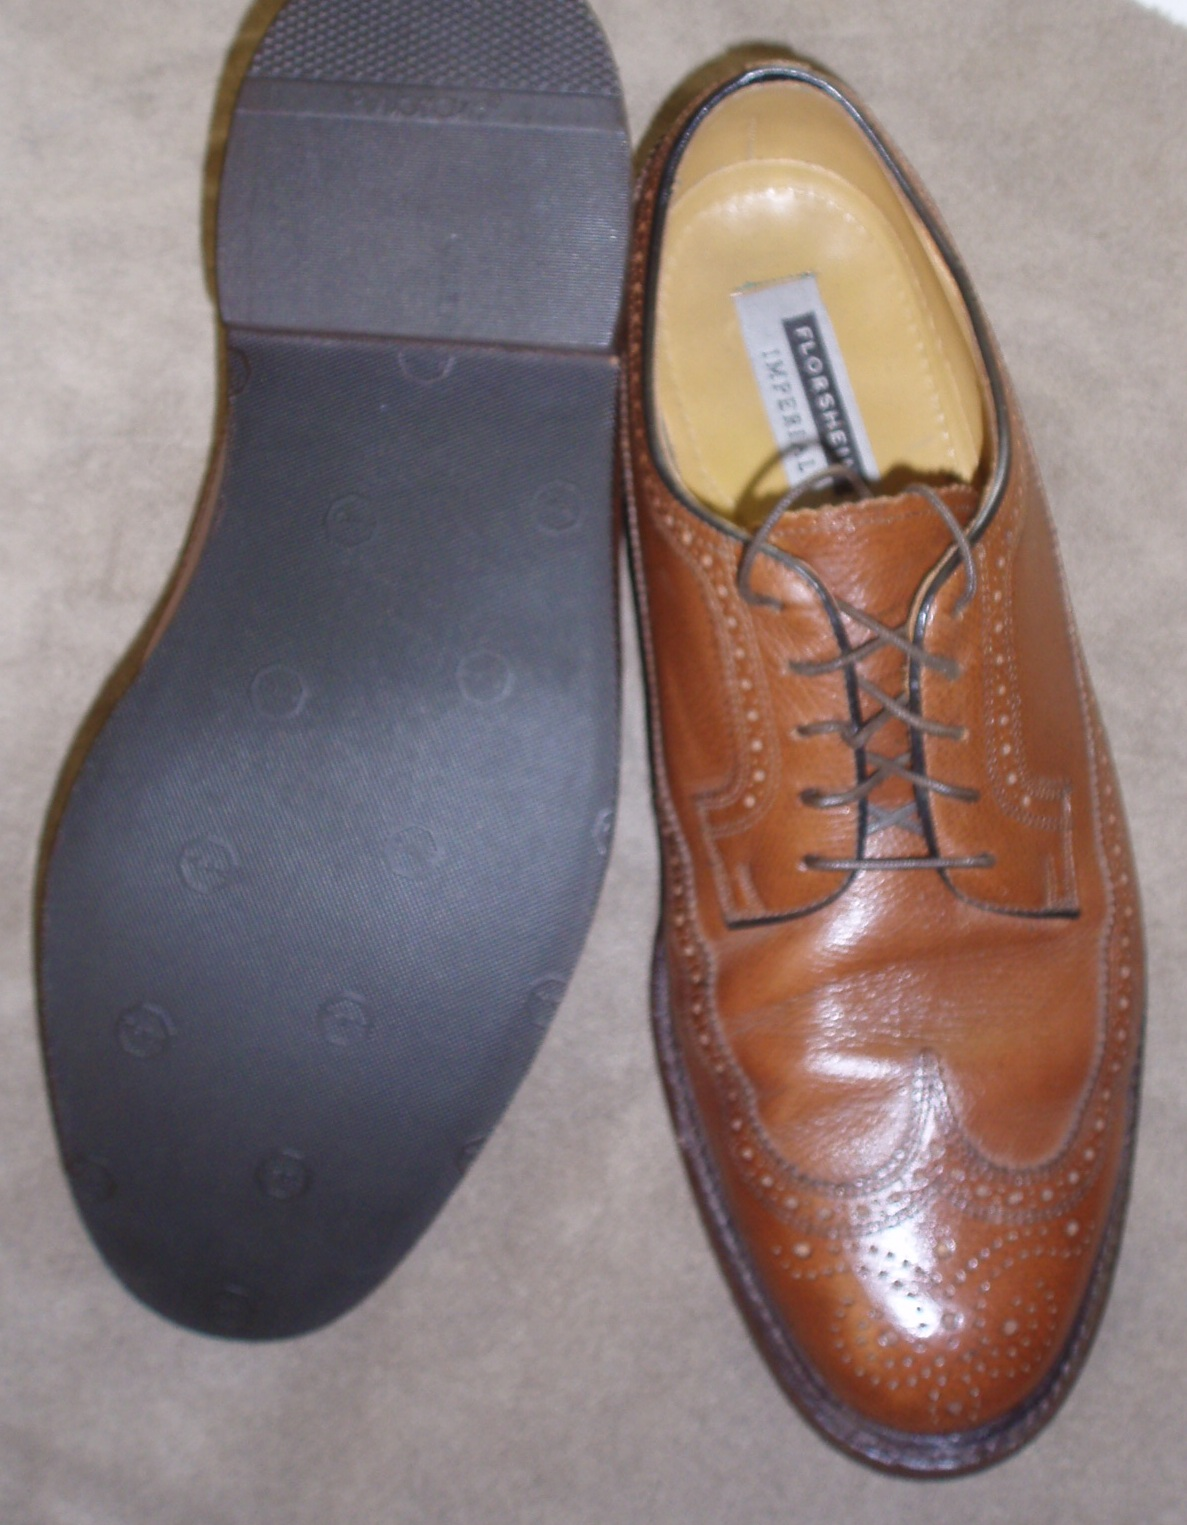 Thrift Store Dress Shoes